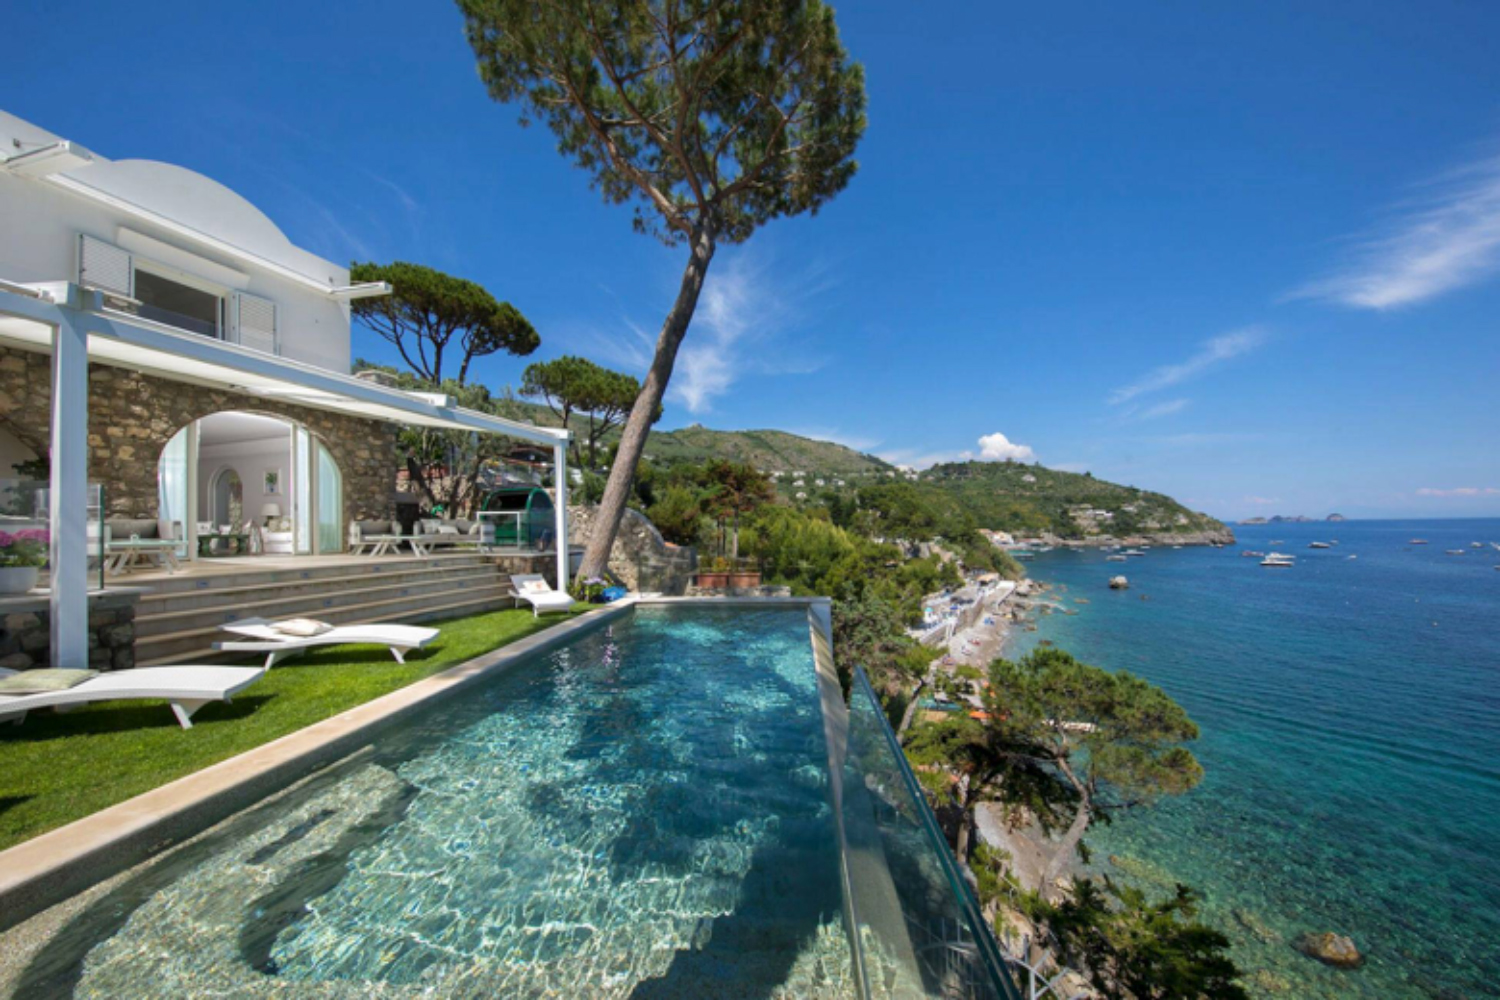 Home in Italy: Bringing a Touch of Luxury to Your Holiday - News -  Orizzonte Italia Magazine